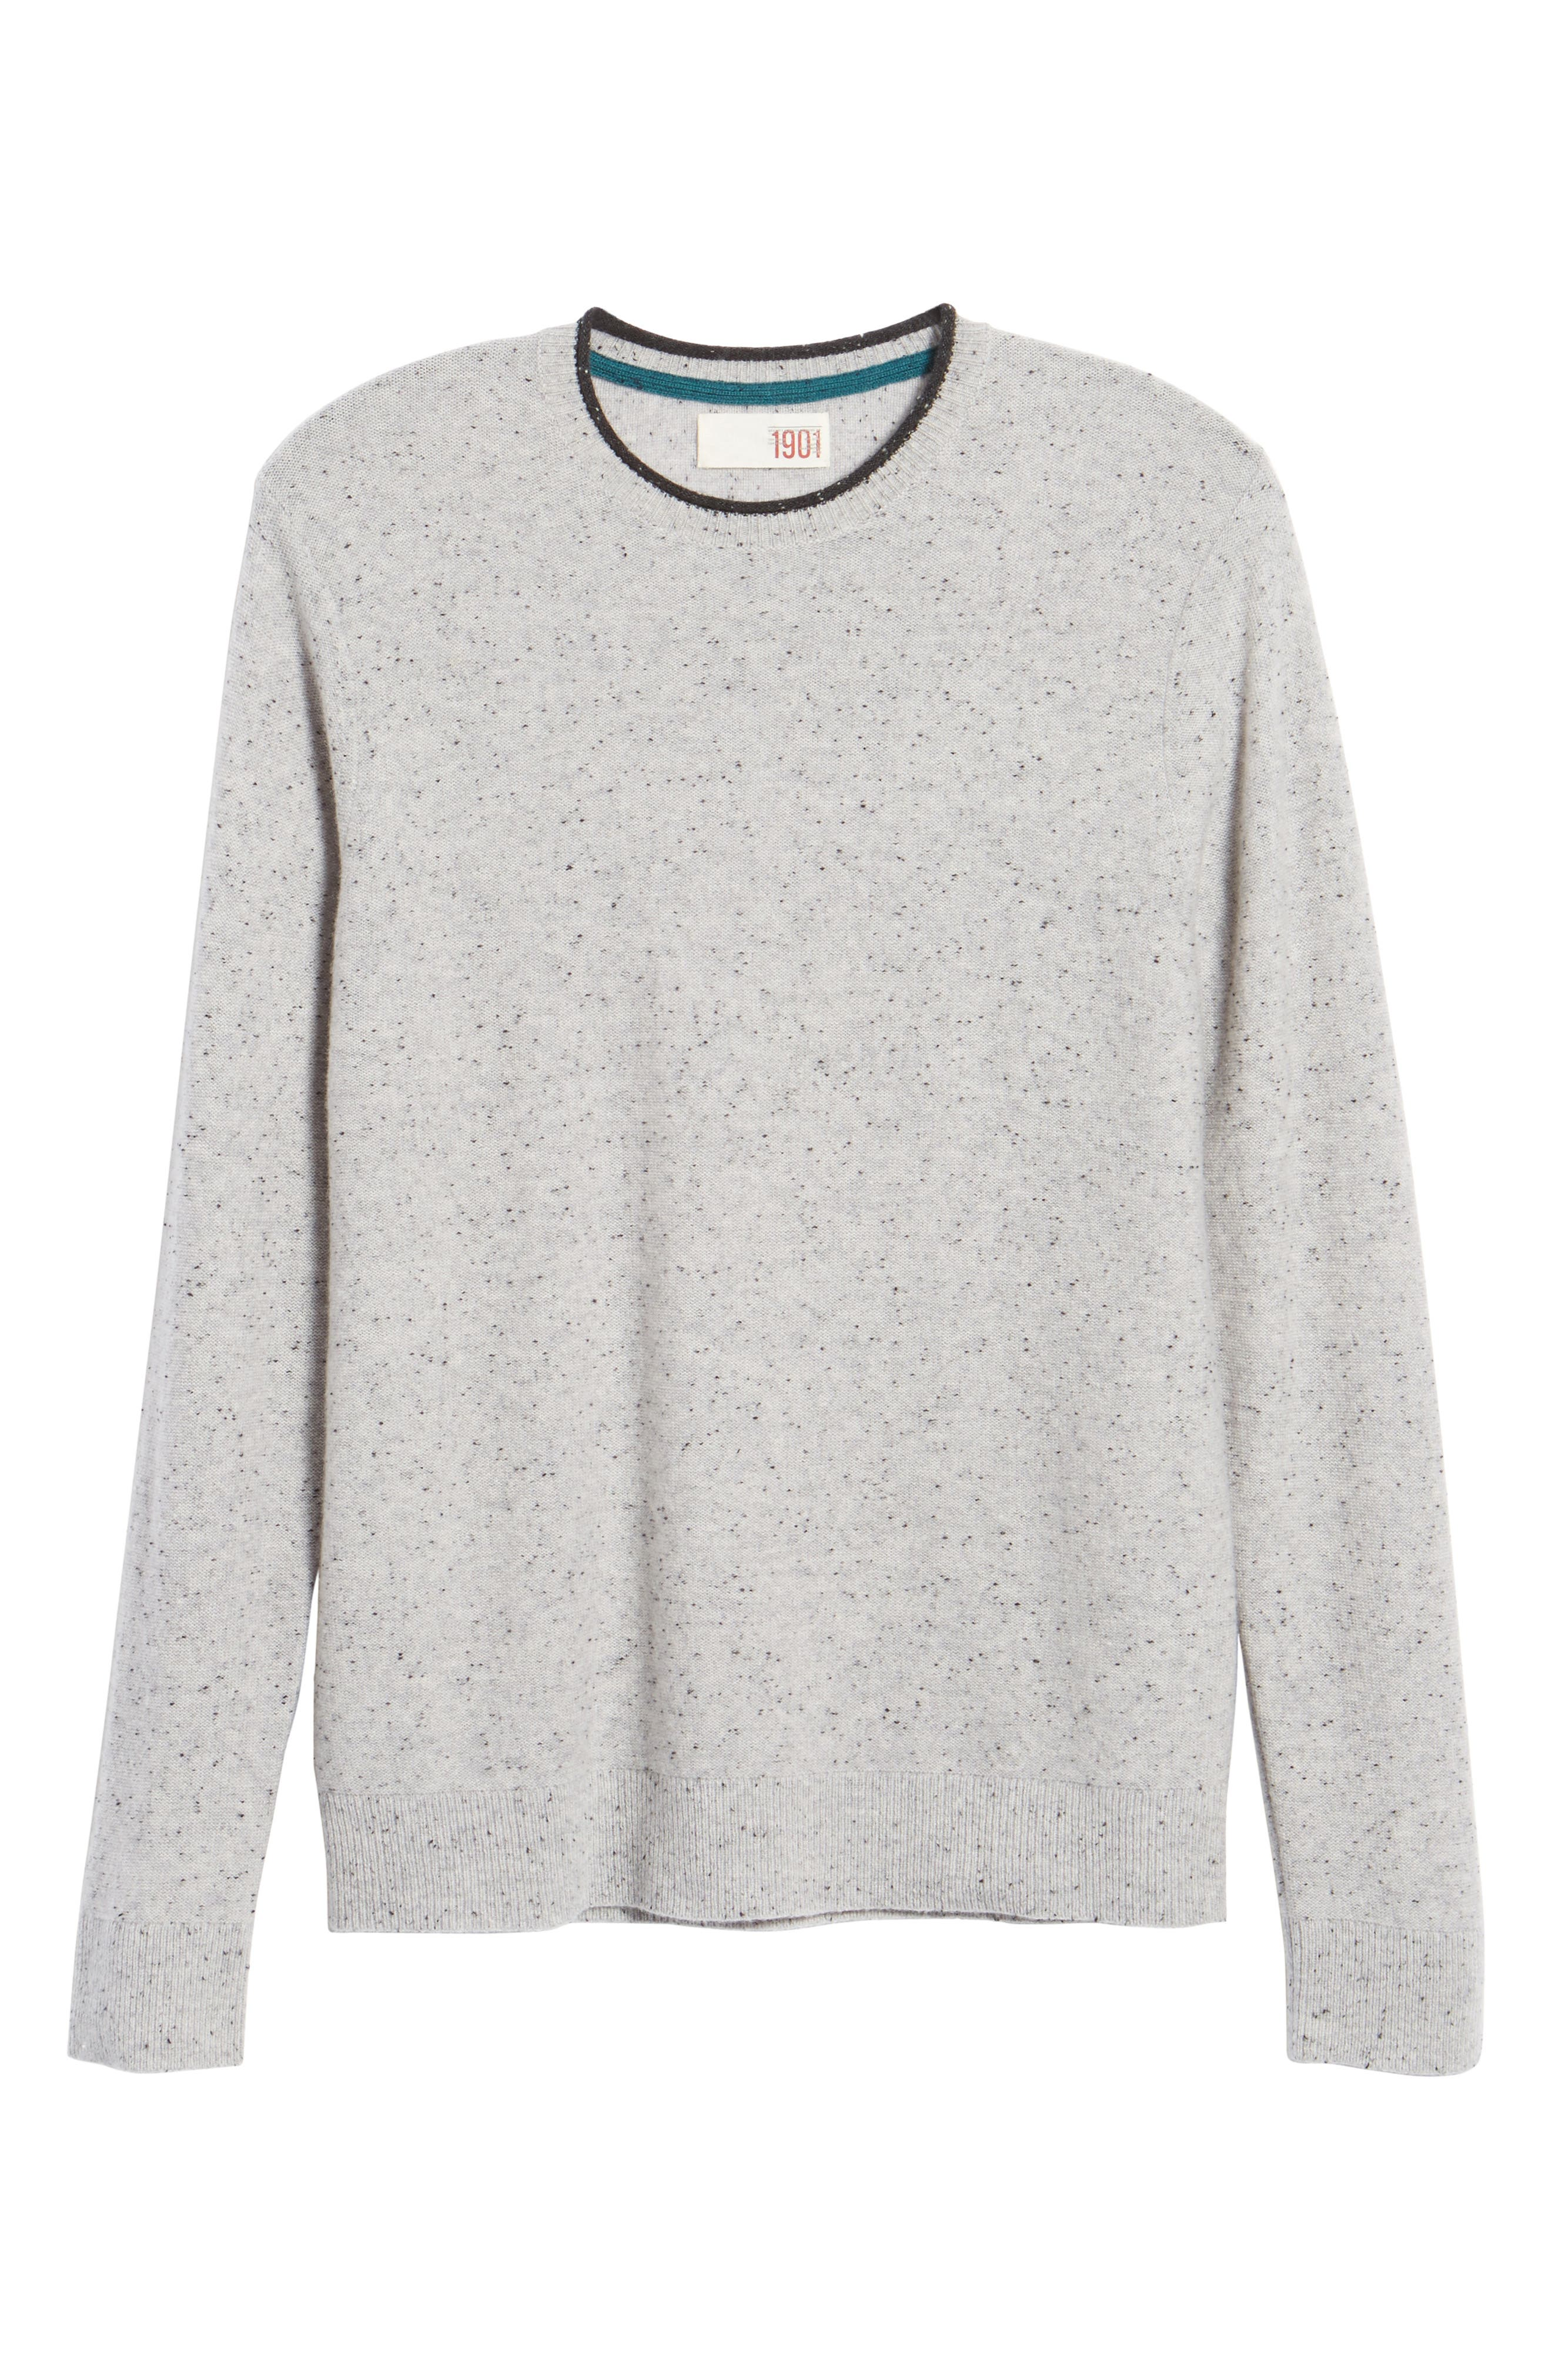 Nep Wool & Cashmere Sweater,                             Alternate thumbnail 6, color,                             Grey Donegal